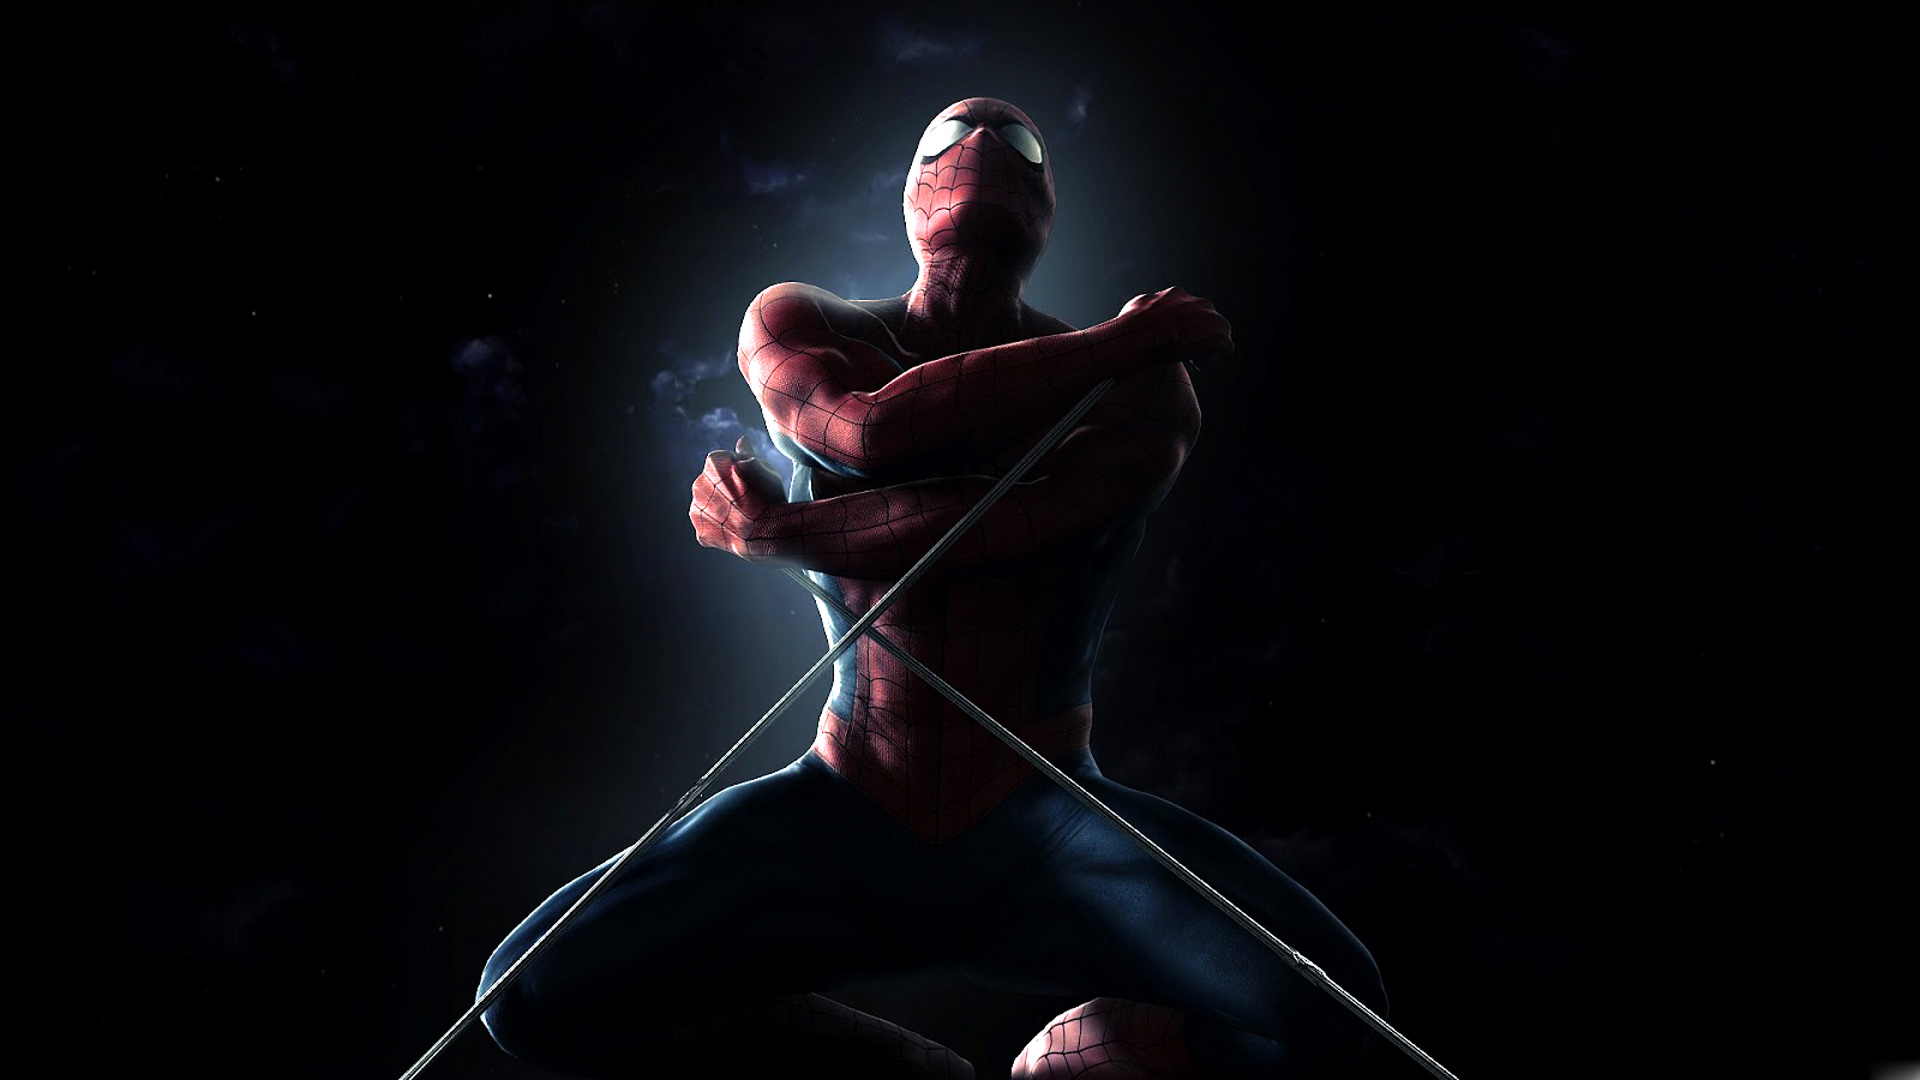 Awesome Spiderman Wallpaper